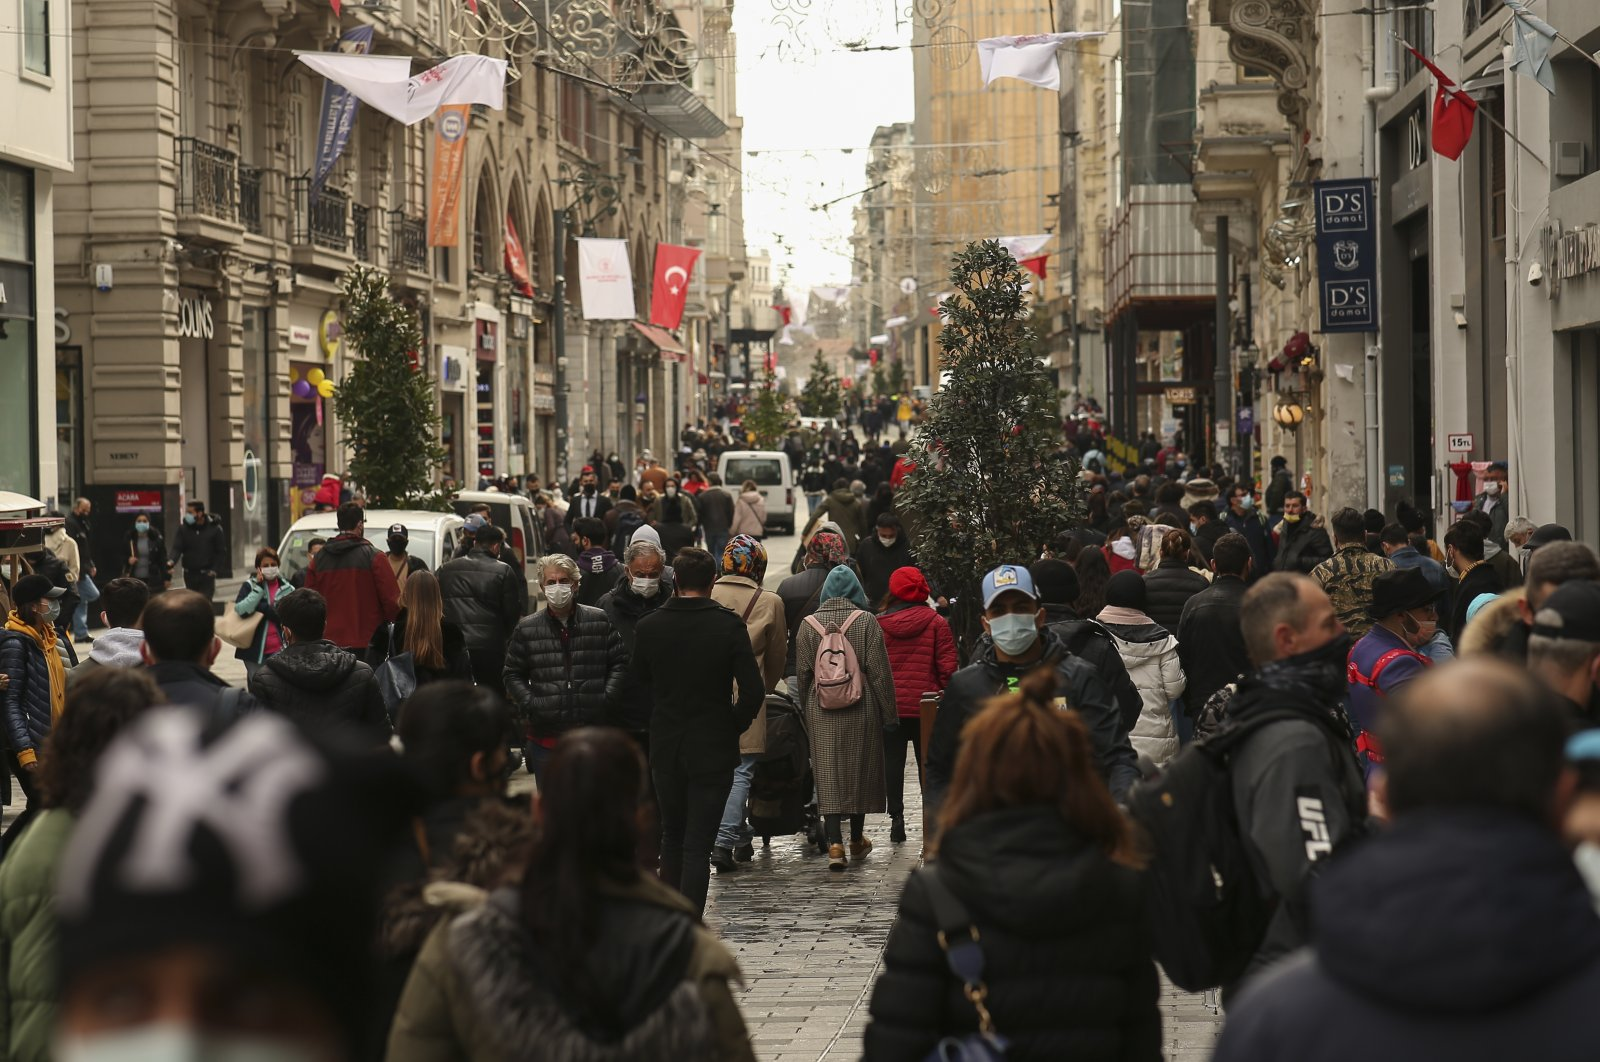 People walk in Istiklal Avenue, the main shopping street of Istanbul, Turkey, March 25, 2021. (AP Photo)